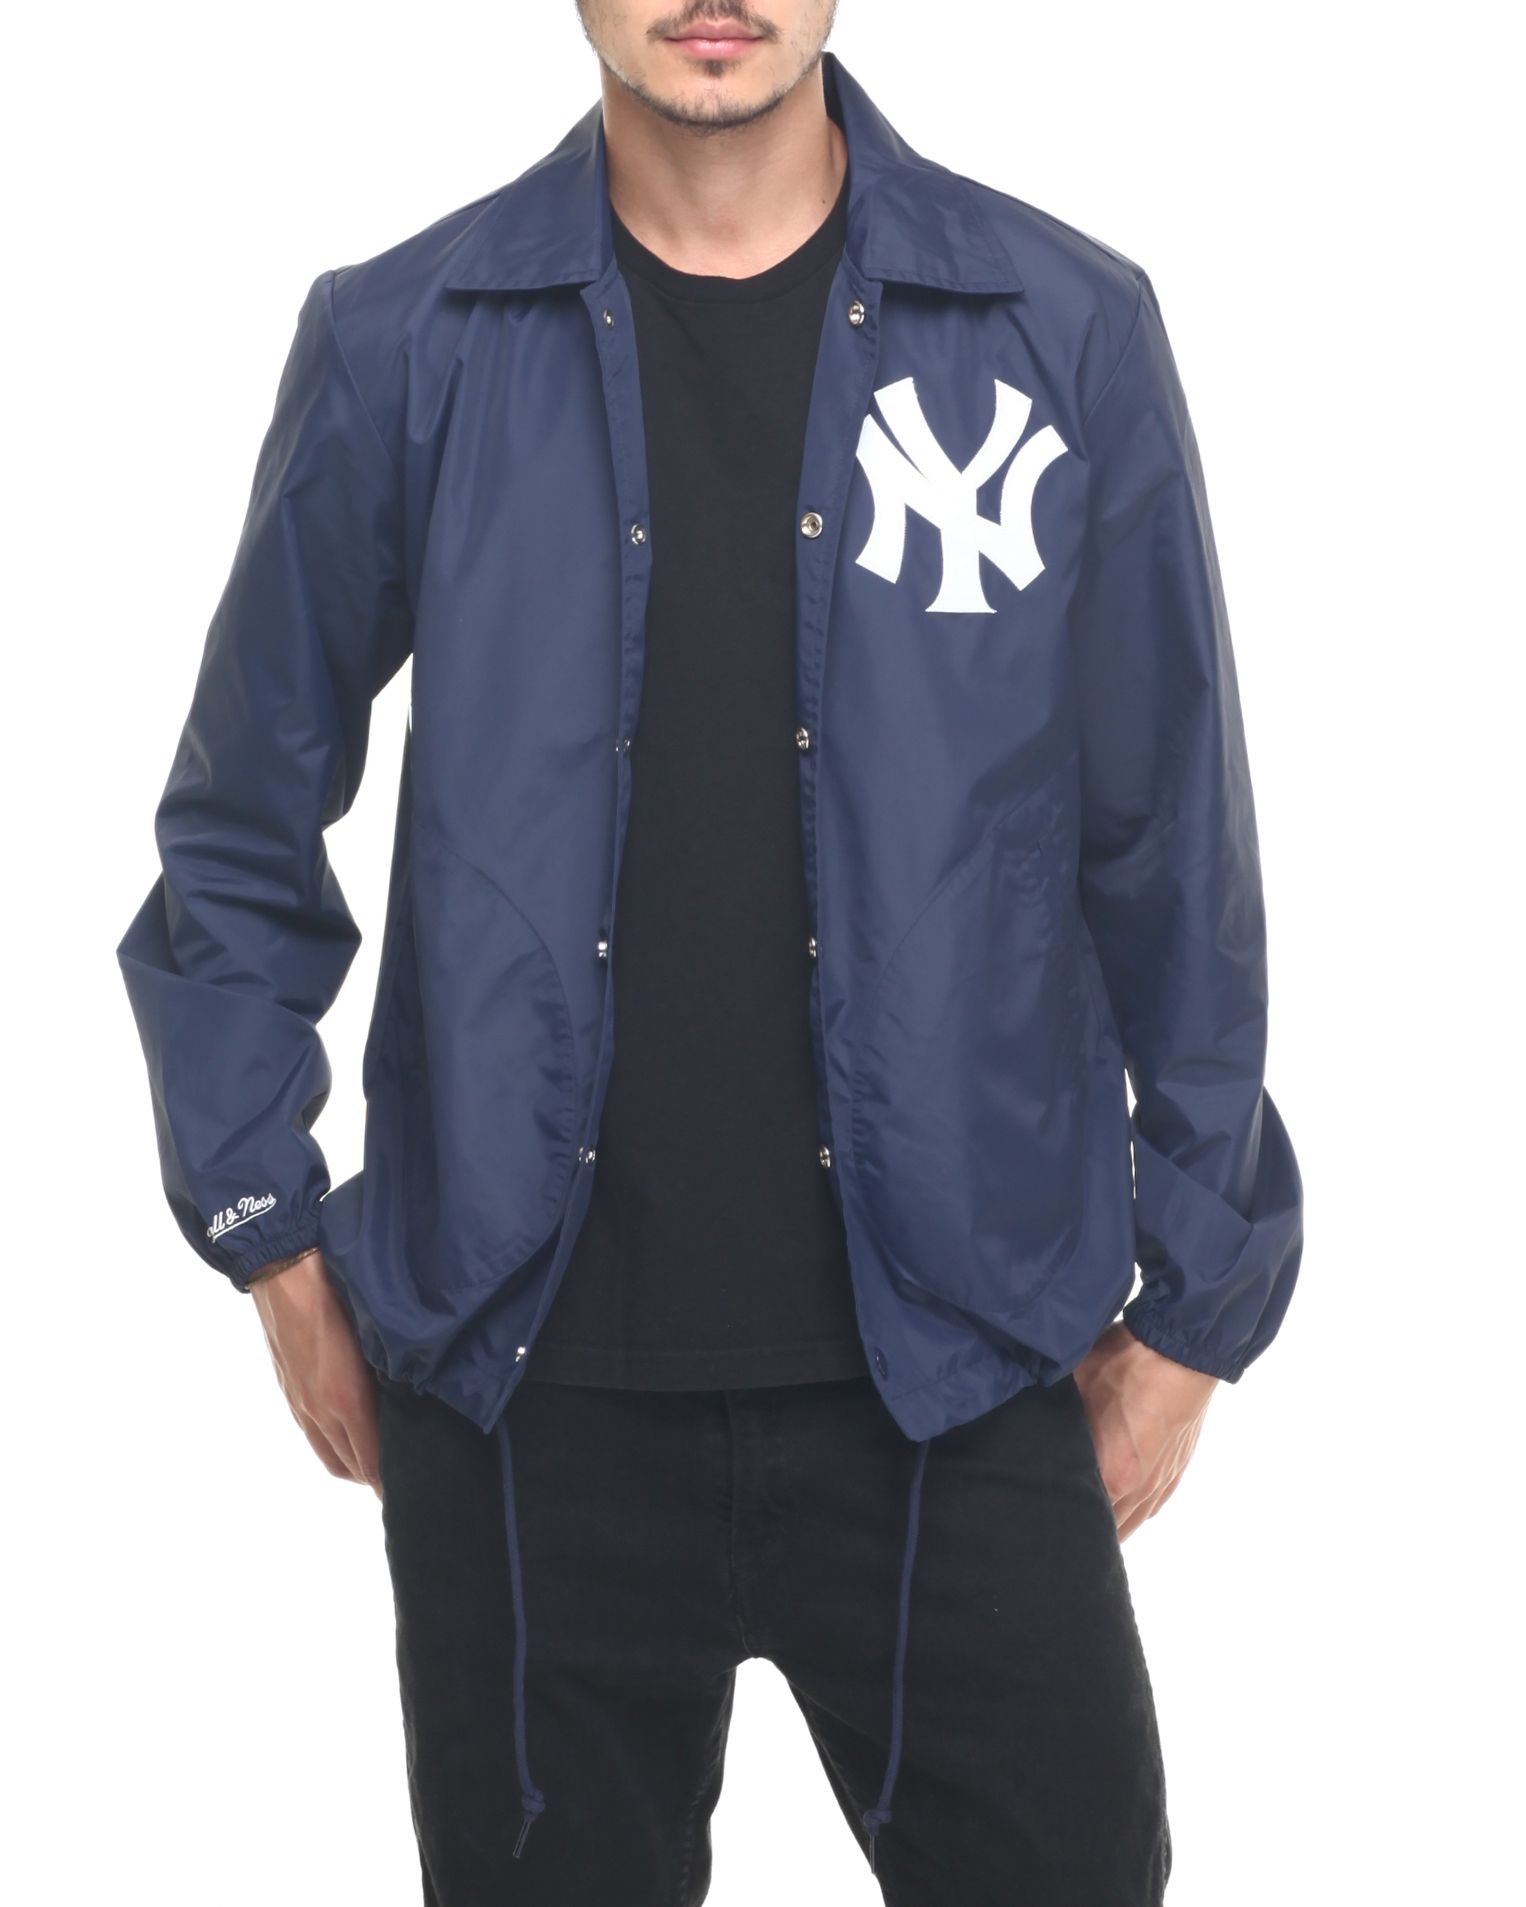 e979397d1 Buy New York Yankees MLB Assistant Coach Jacket Men s Outerwear from ...